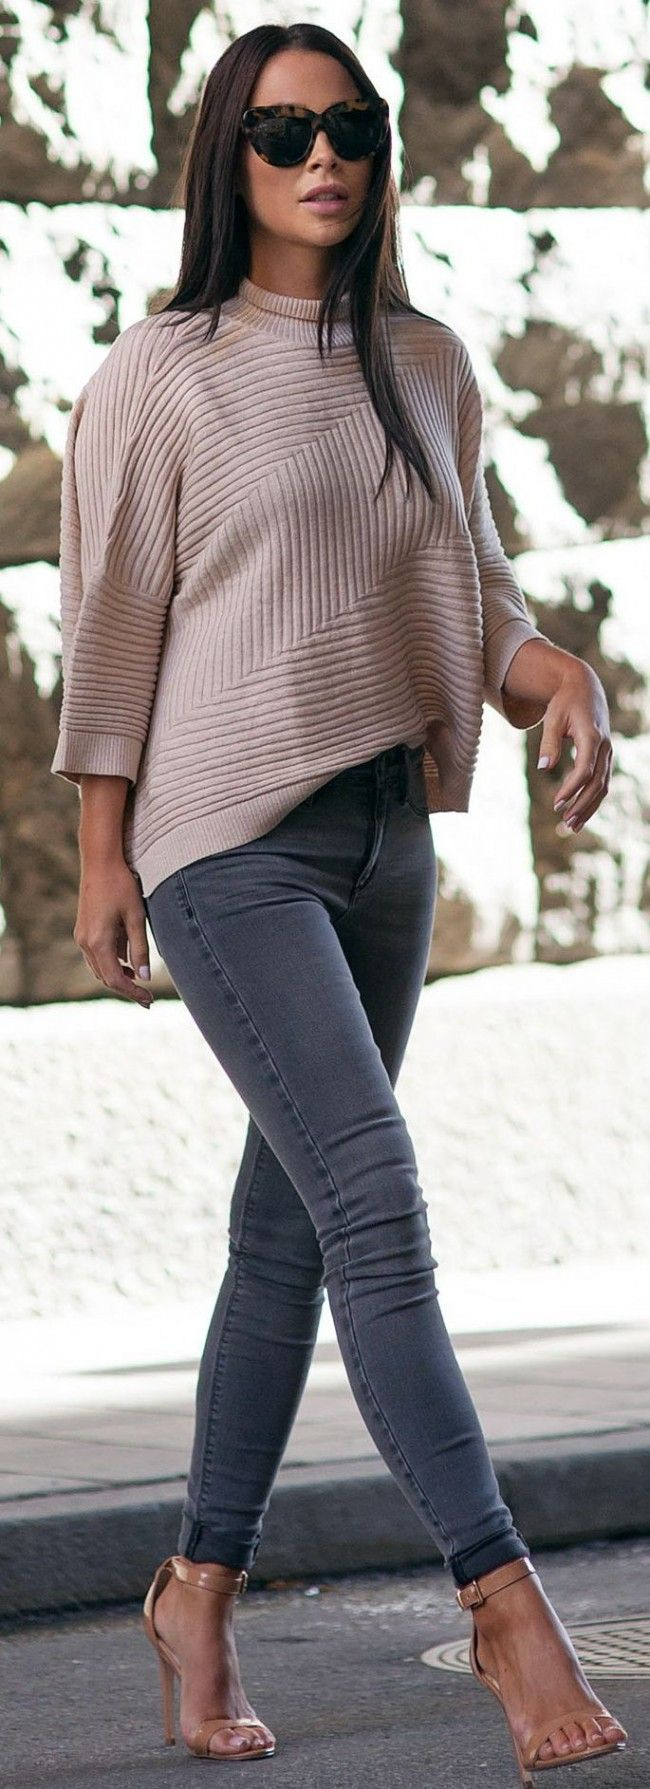 Street Fashion Inspiration | River Island Molly Jeans, Knitted Sweater #river - Women's Shoes - http://amzn.to/2gIrqH5